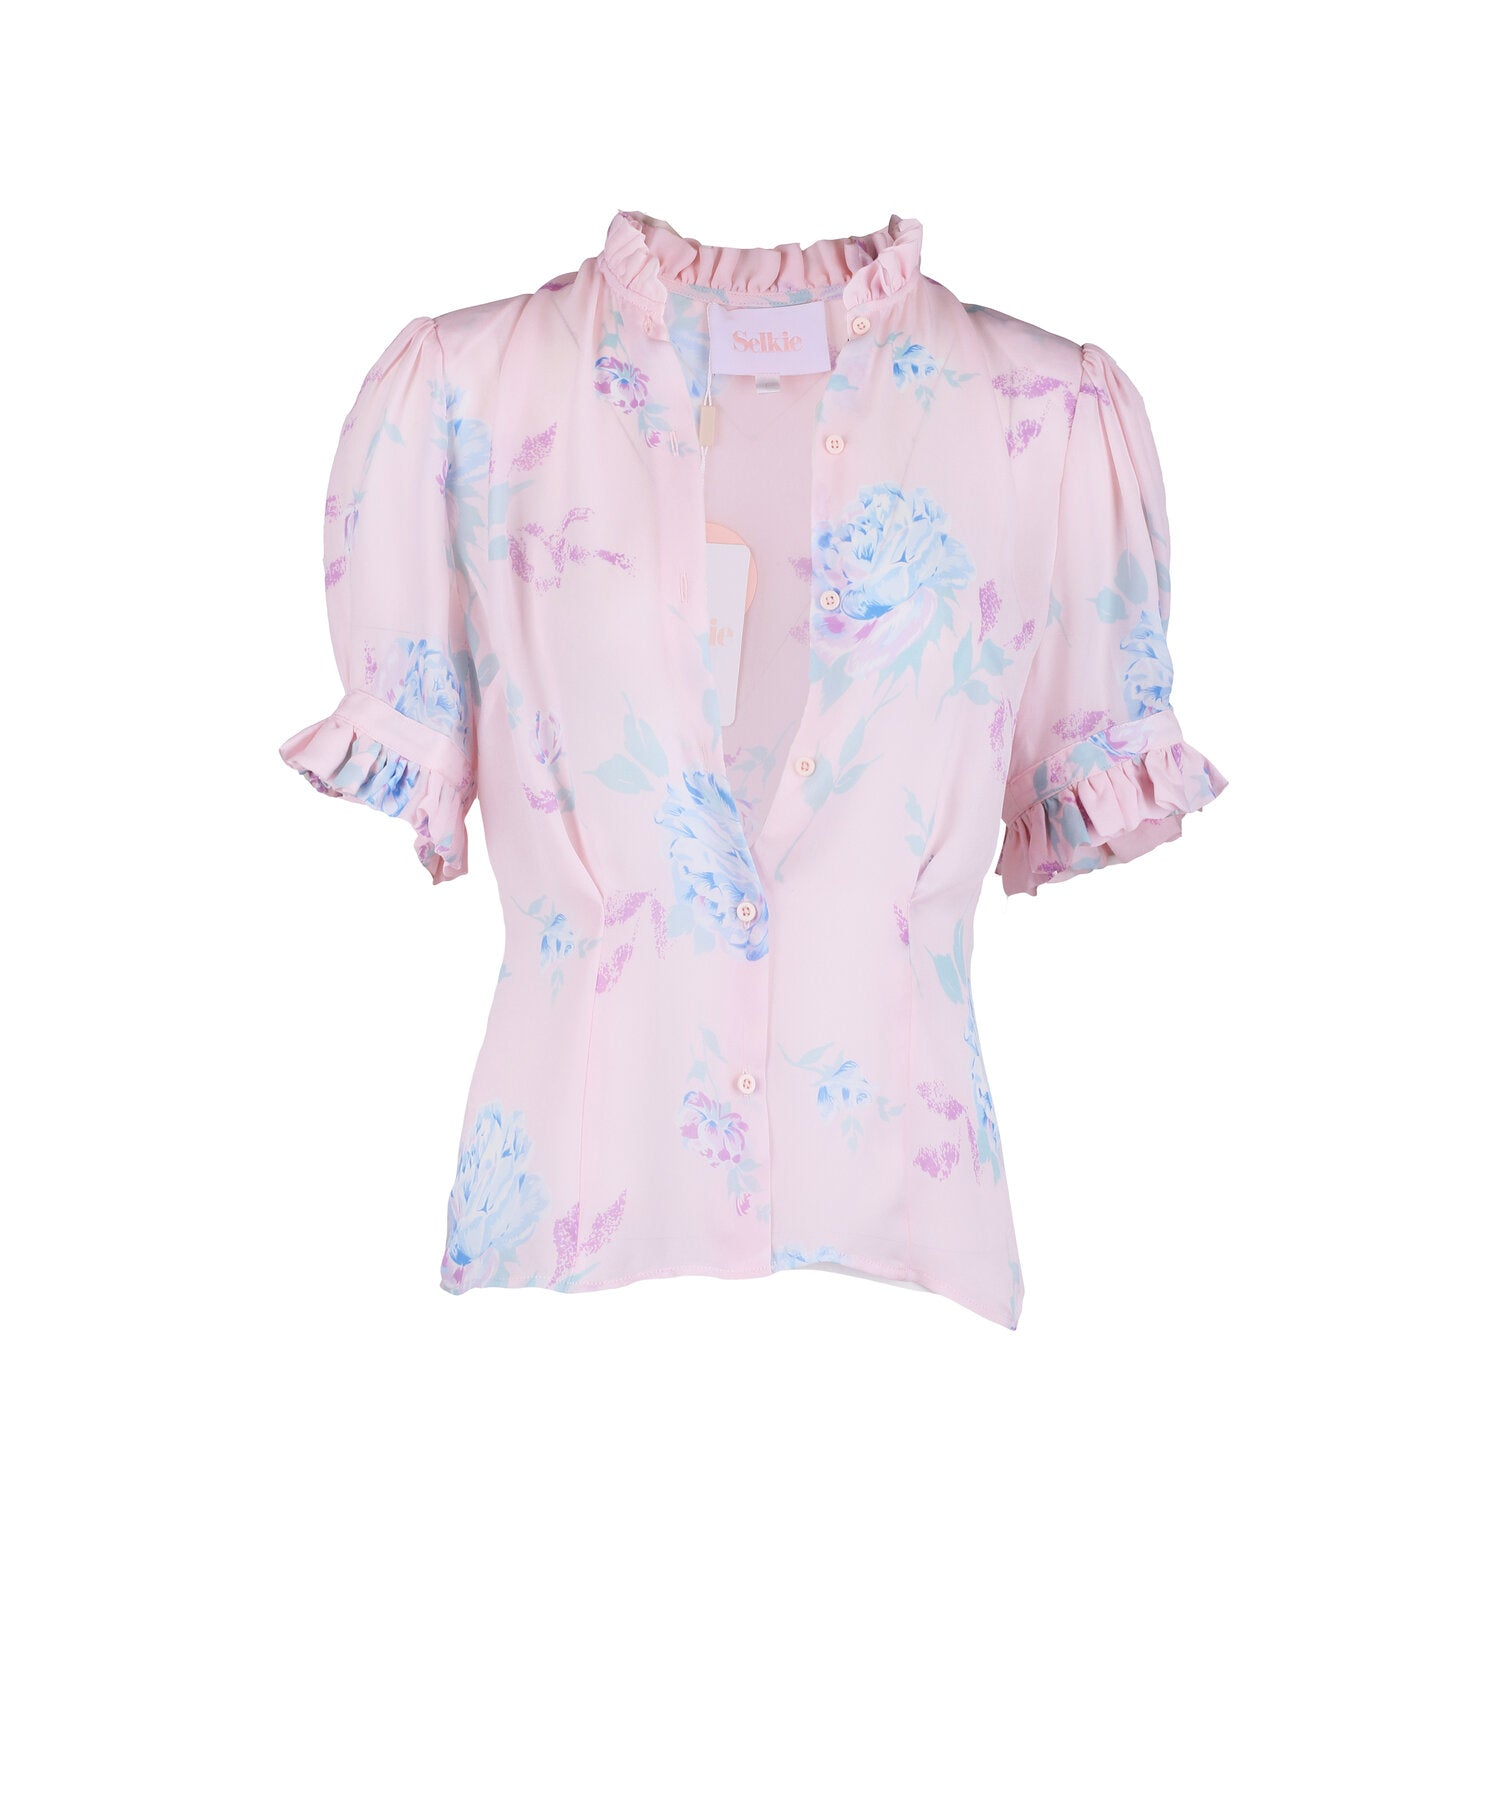 The Dreamhouse Bistro Blouse